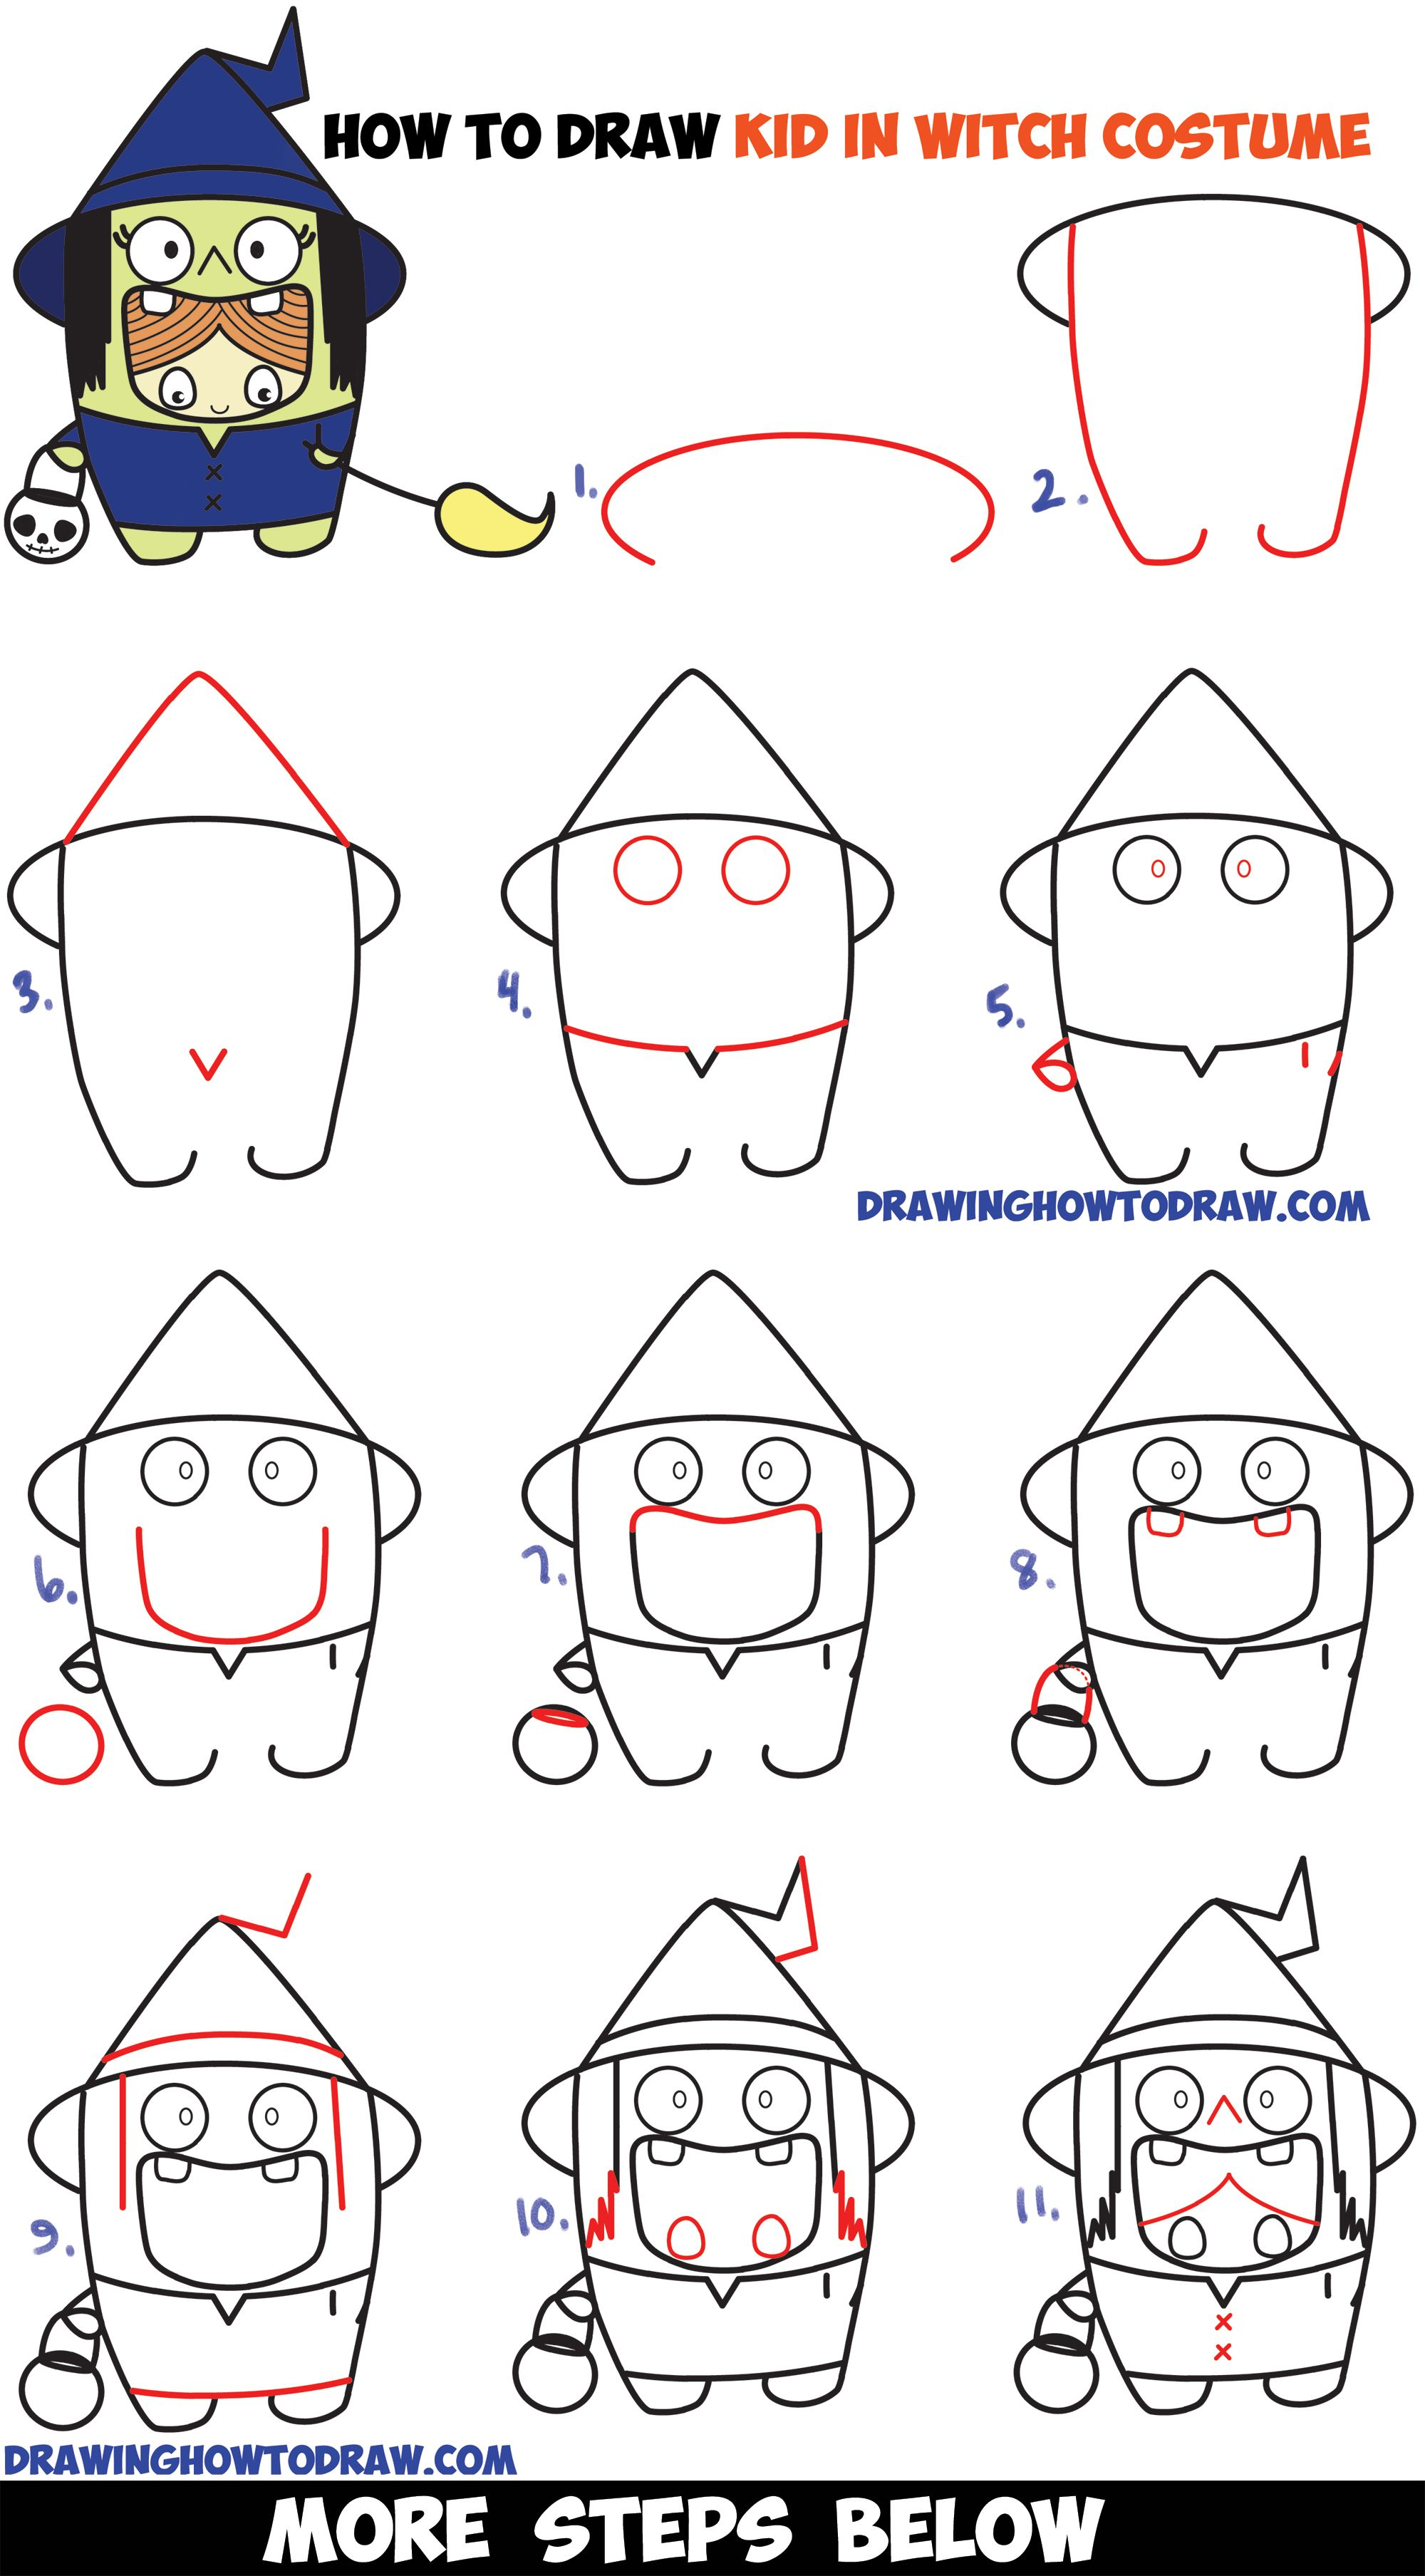 How To Draw A Kid In A Halloween Witch Costume Cute Kawaii Easy Step By Step Drawing Tutorial For Kids Drawing Tutorials For Kids Drawing Tutorial Witch Drawing